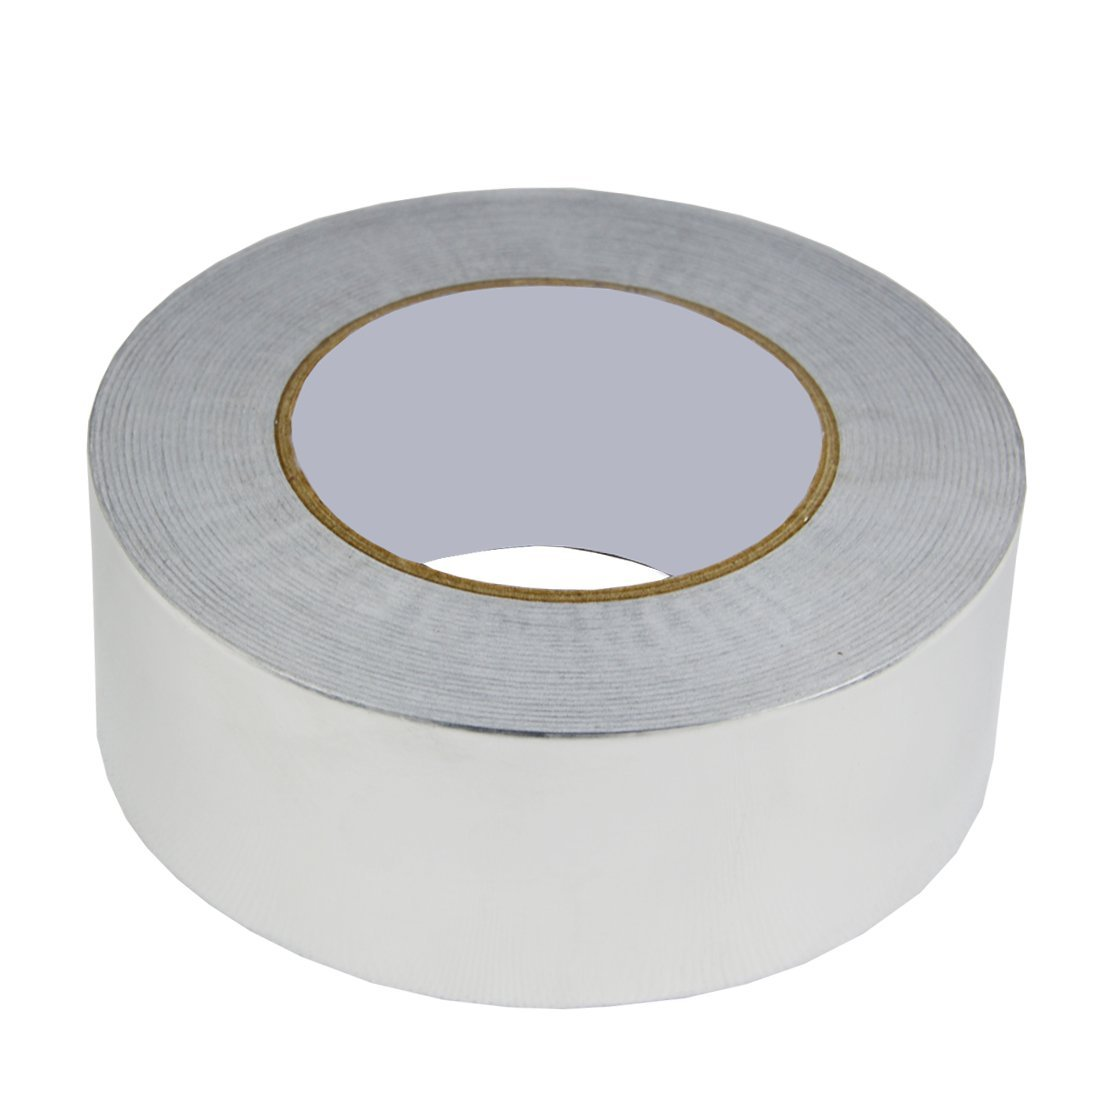 Hxtape 4 Mil (2 inch-55yds) Aluminum Foil Tape,Silver,Good for HVAC, Sealing & Patching Hot & Cold Air Ducts, Metal Repair by Hxtape (Image #2)